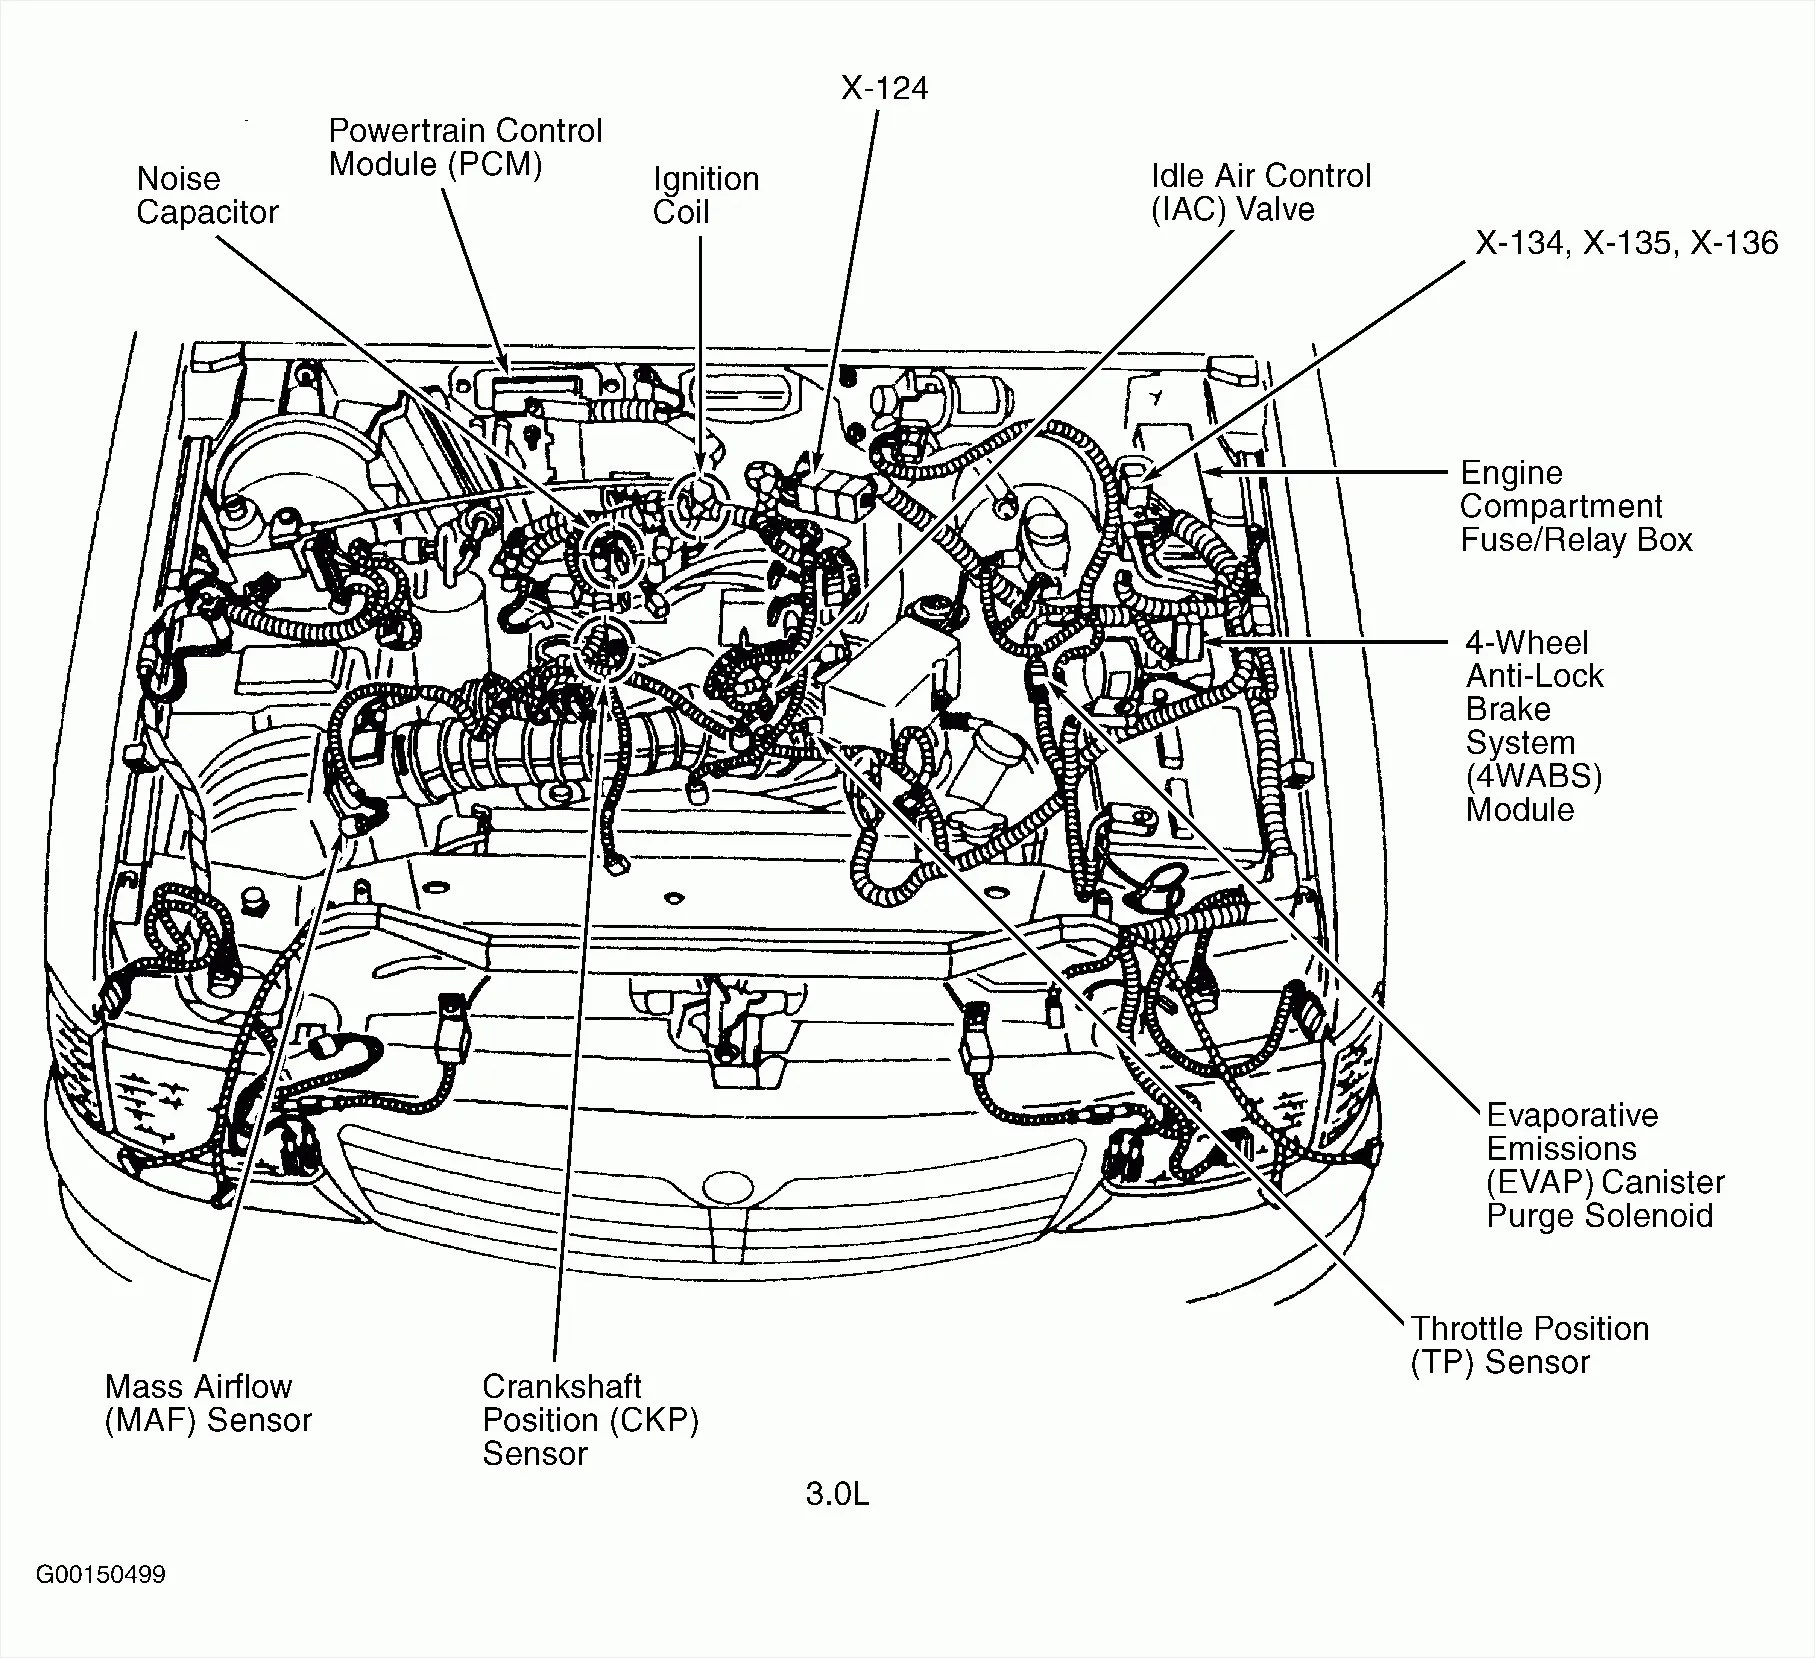 small resolution of 1968 cadillac engine diagram wiring diagram details 4 9l cadillac engine diagram s